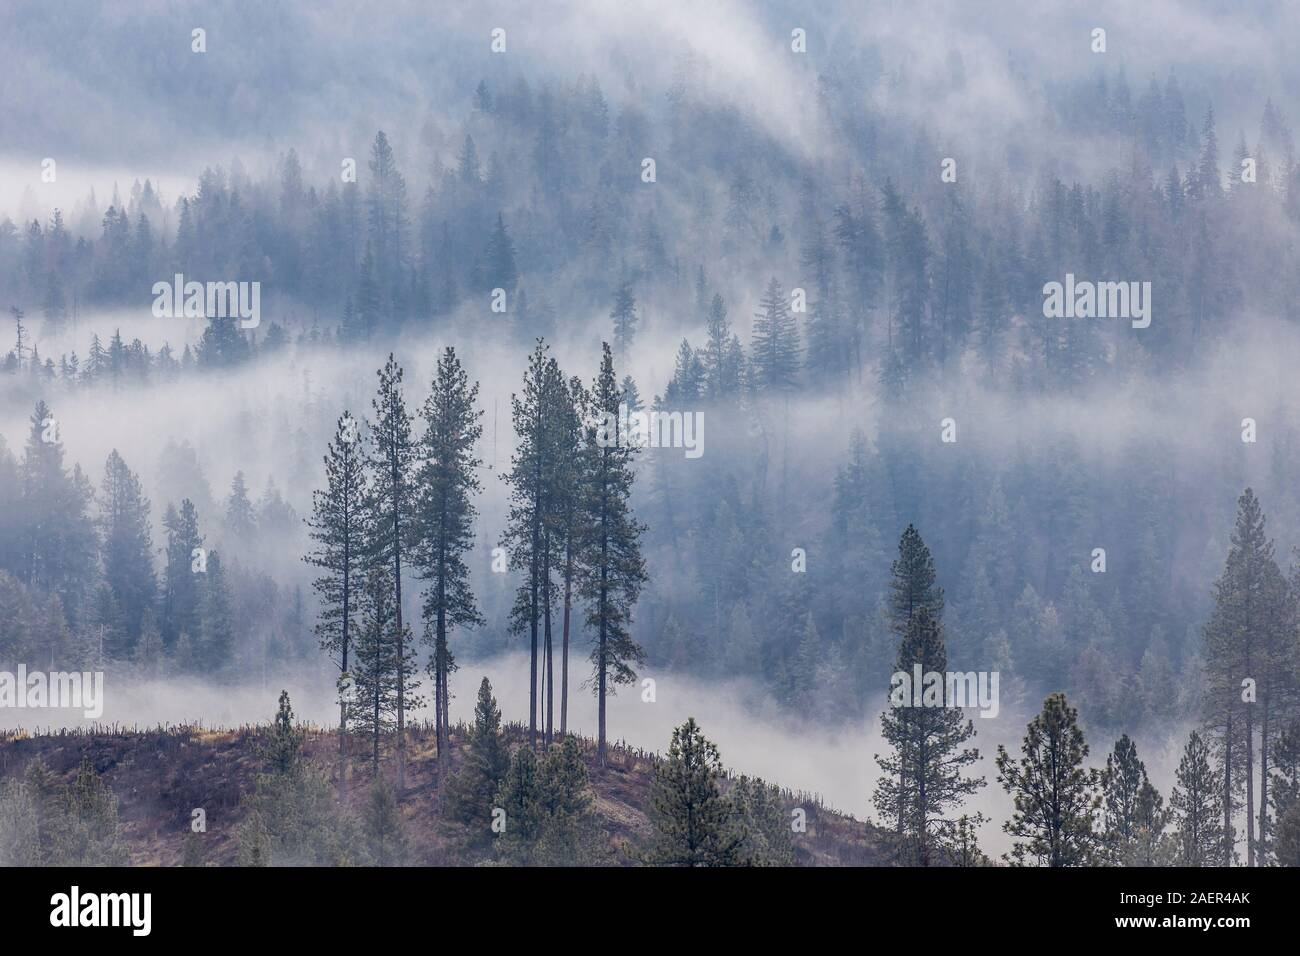 of the Misty Mountains Dukl/' Young Spruce